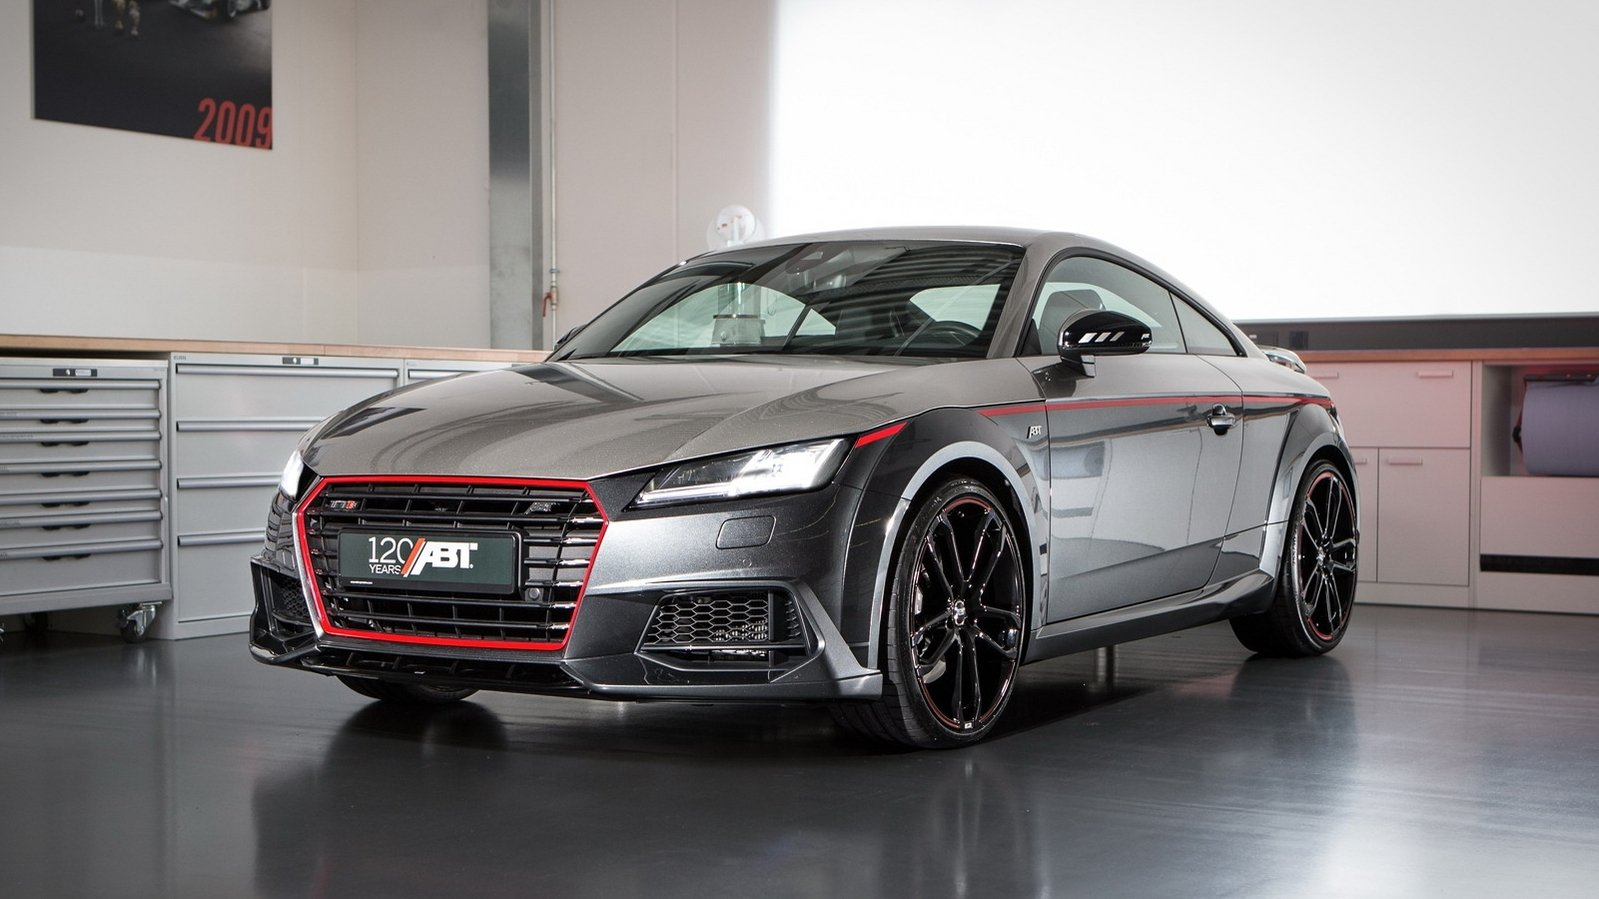 2016 audi tt s 120th anniversary edition by abt sportsline. Black Bedroom Furniture Sets. Home Design Ideas